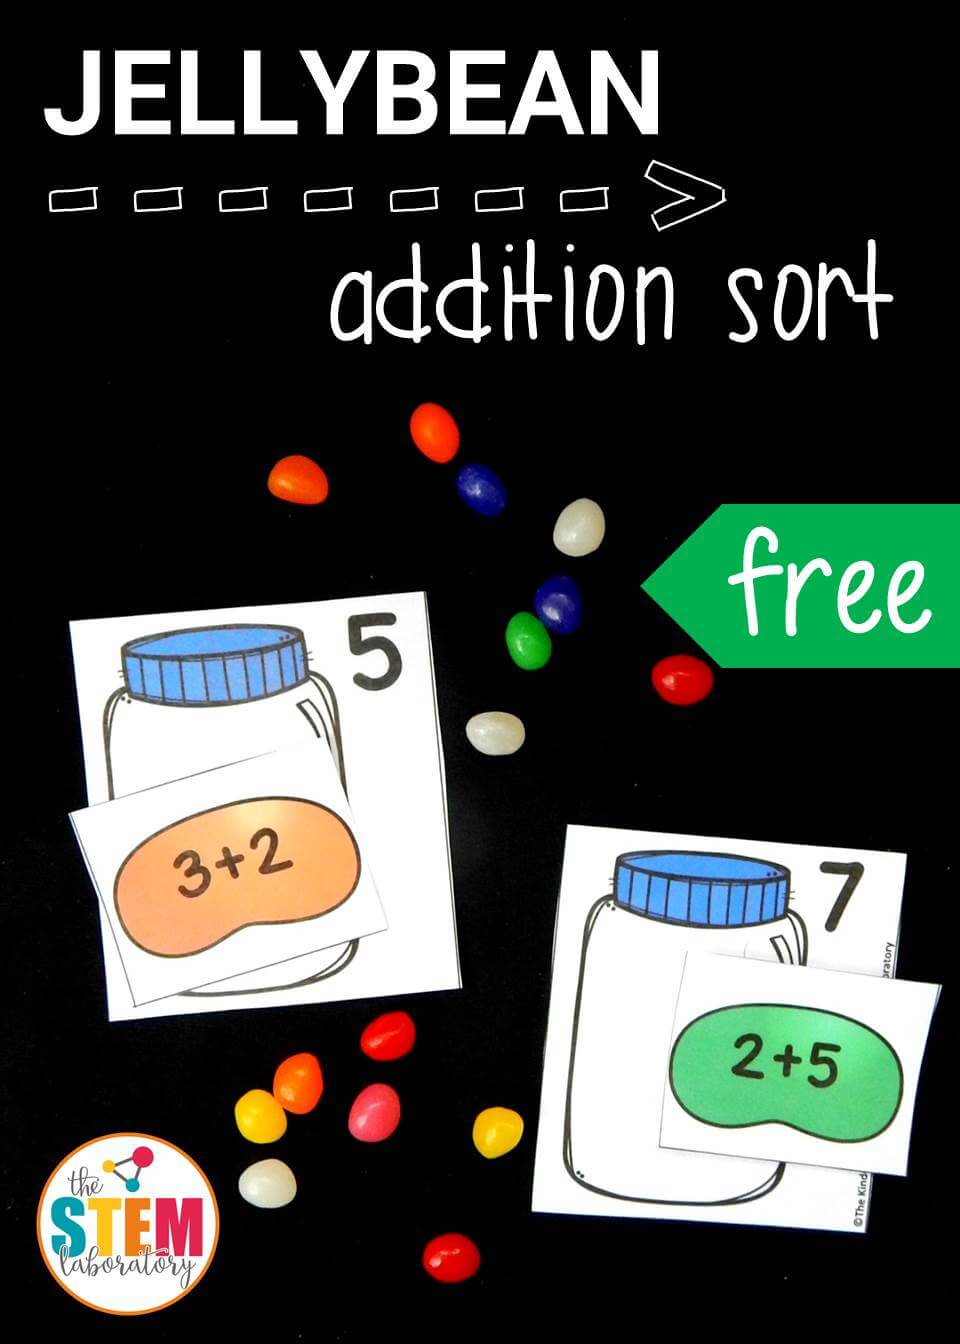 This free jellybean addition sort is a fun, hands on way to practice addition within 10!